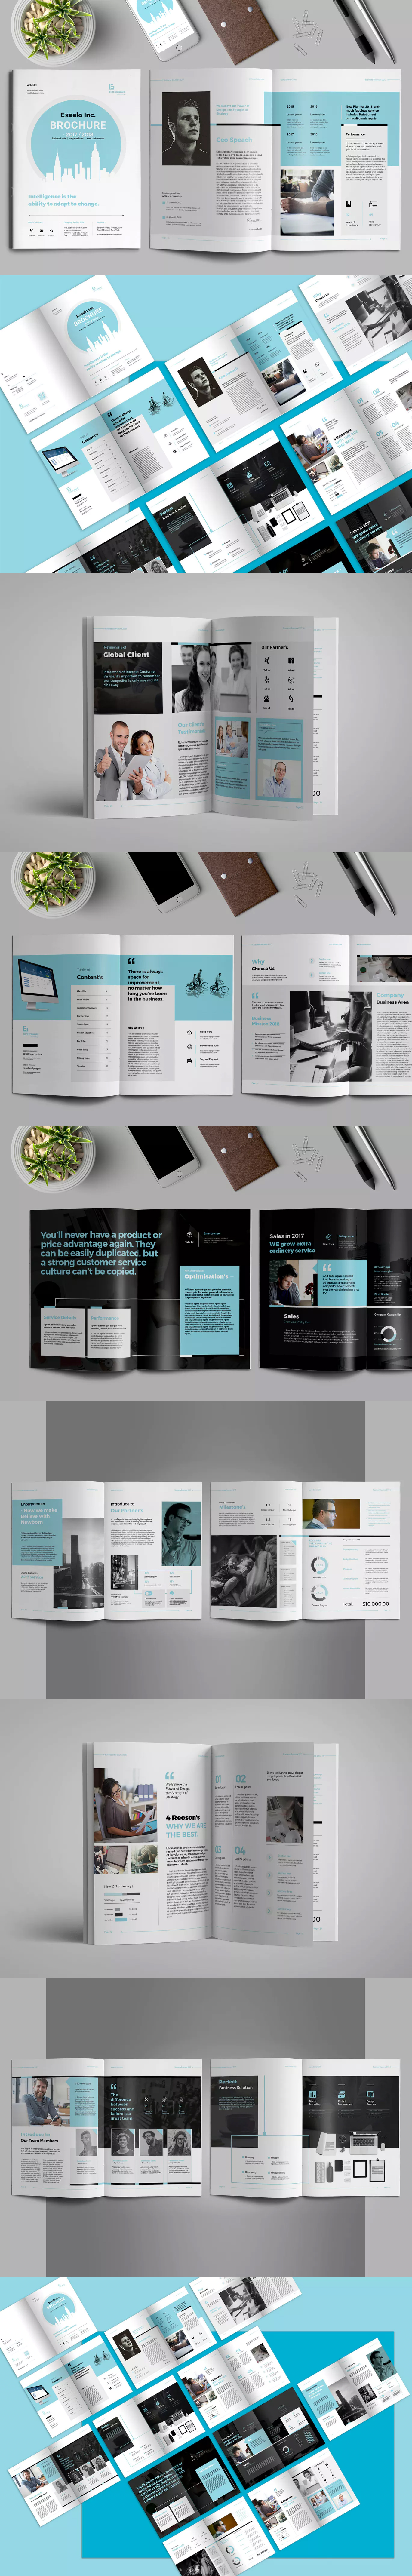 Brochure Template InDesign INDD - A4 and US Letter Size | Brochure ...